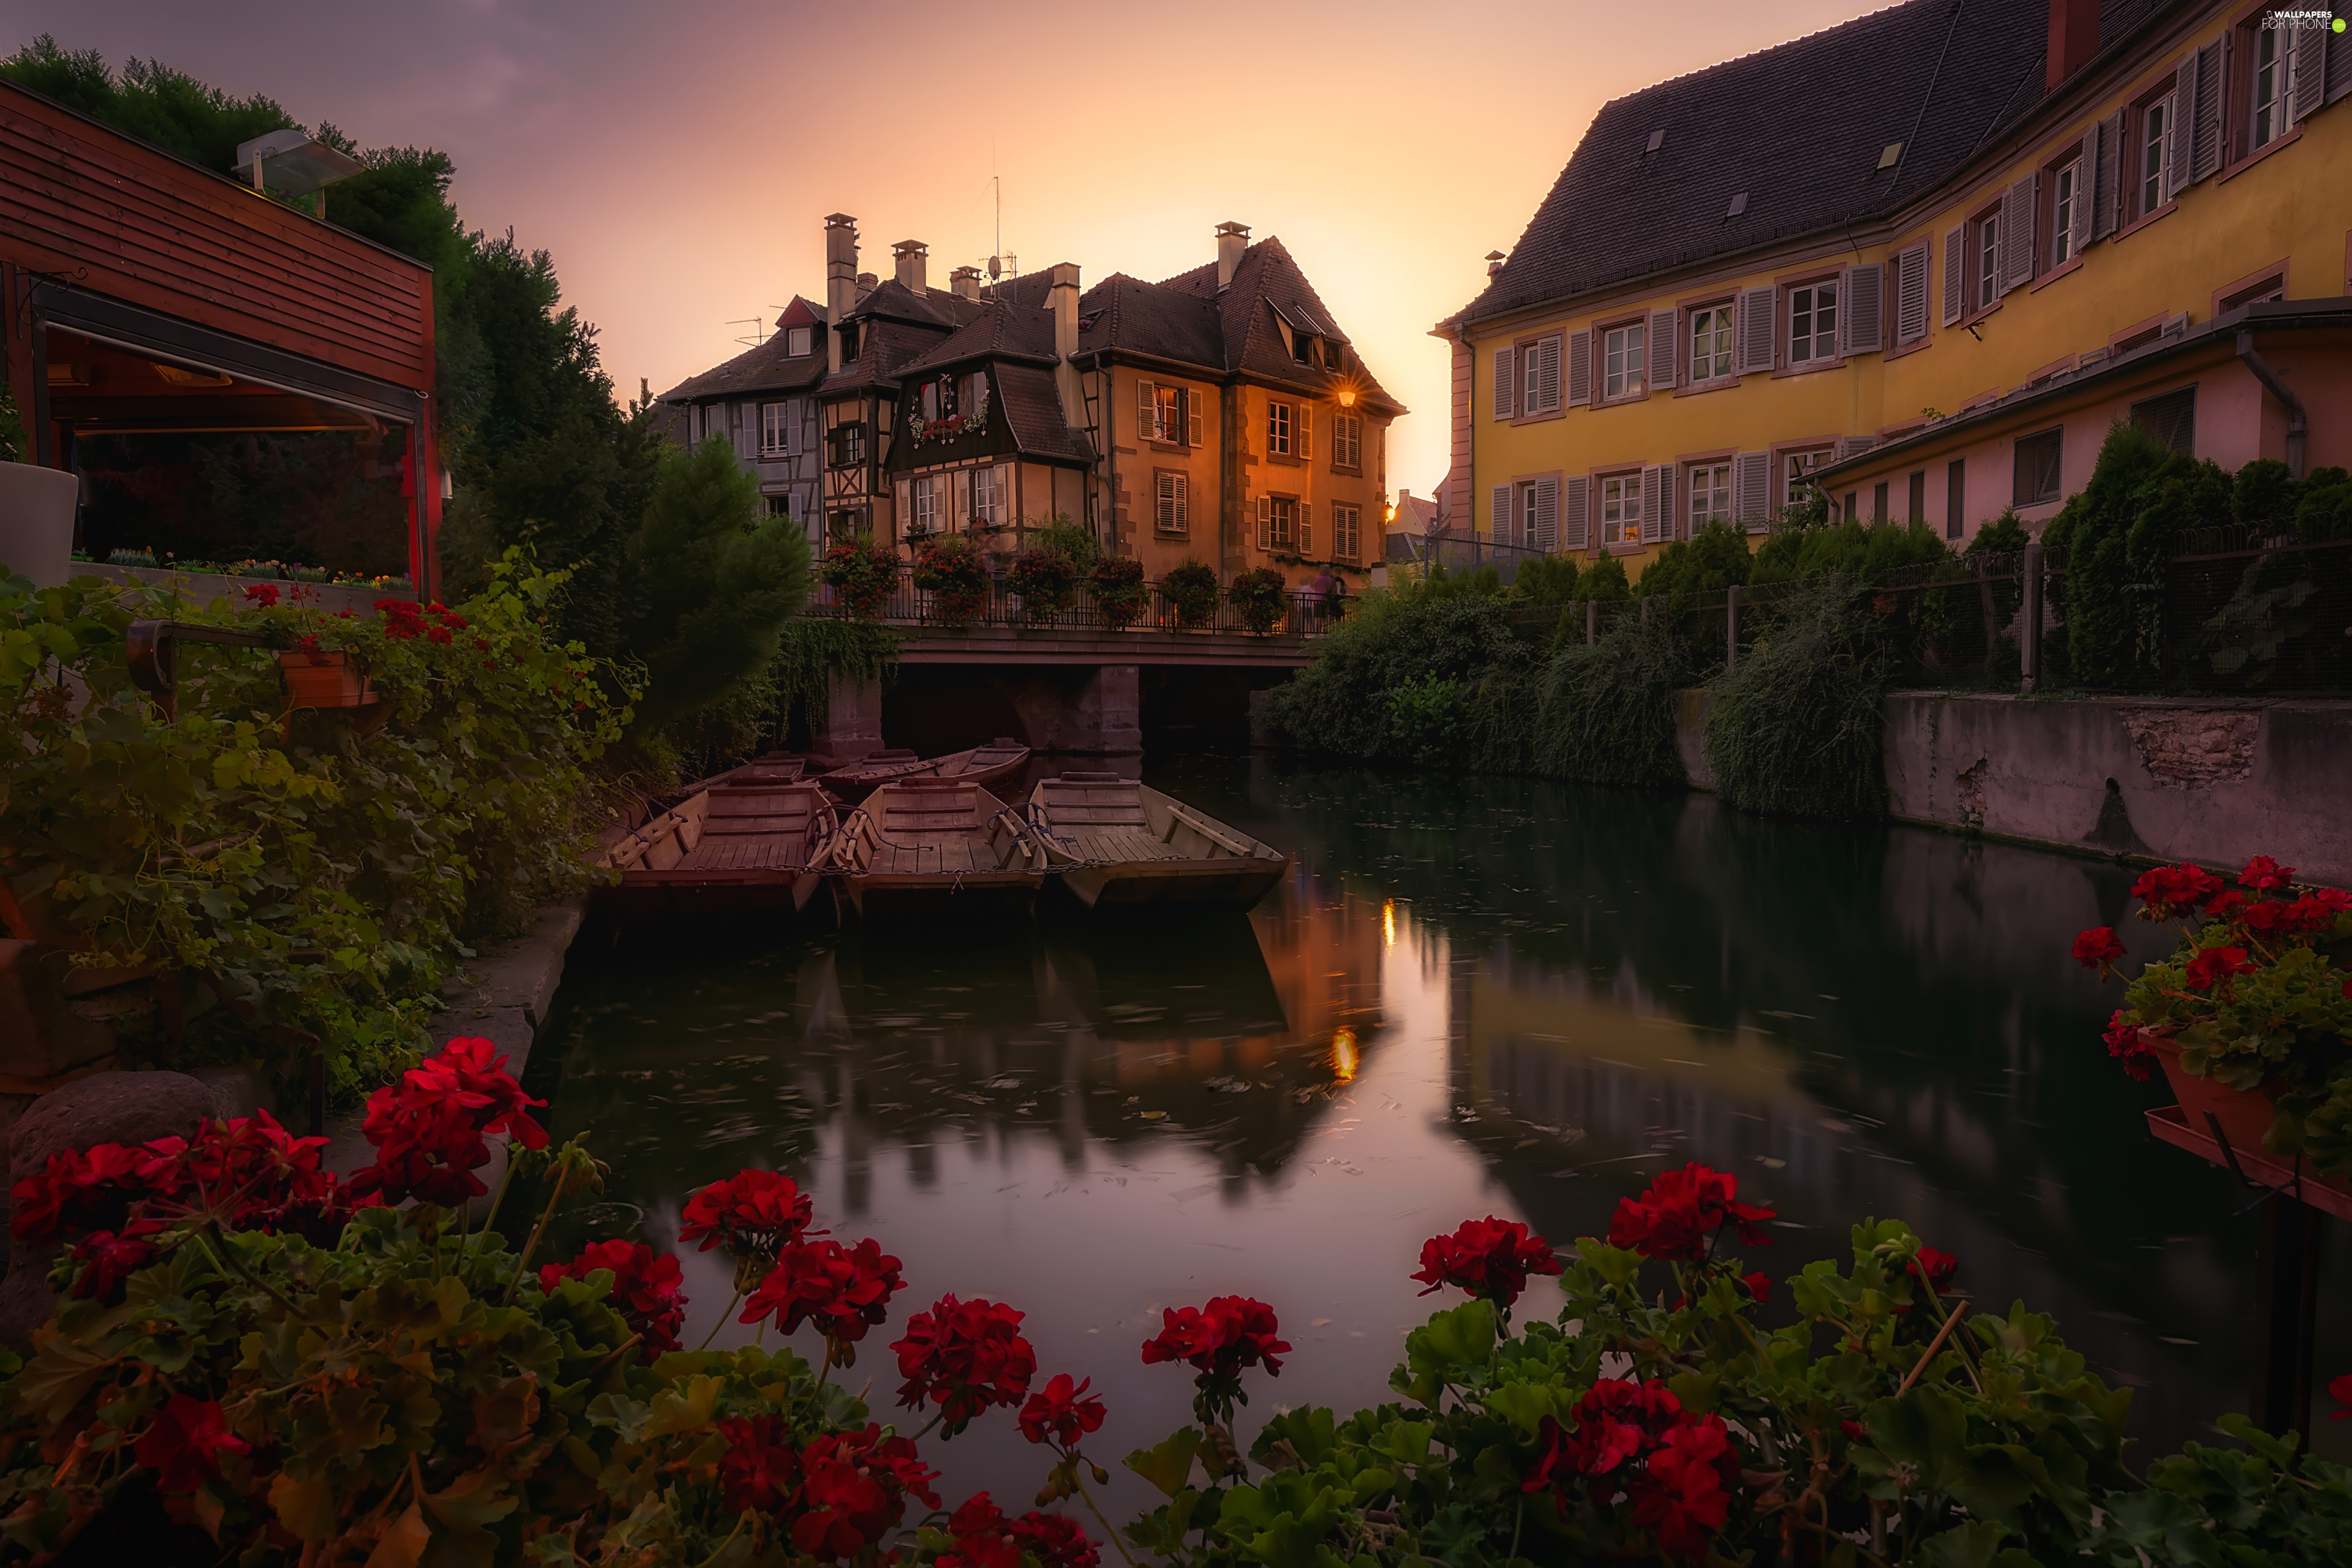 Small Venice District, Lauch River, Upper Rhine Department, boats, Houses, City Colmar, France